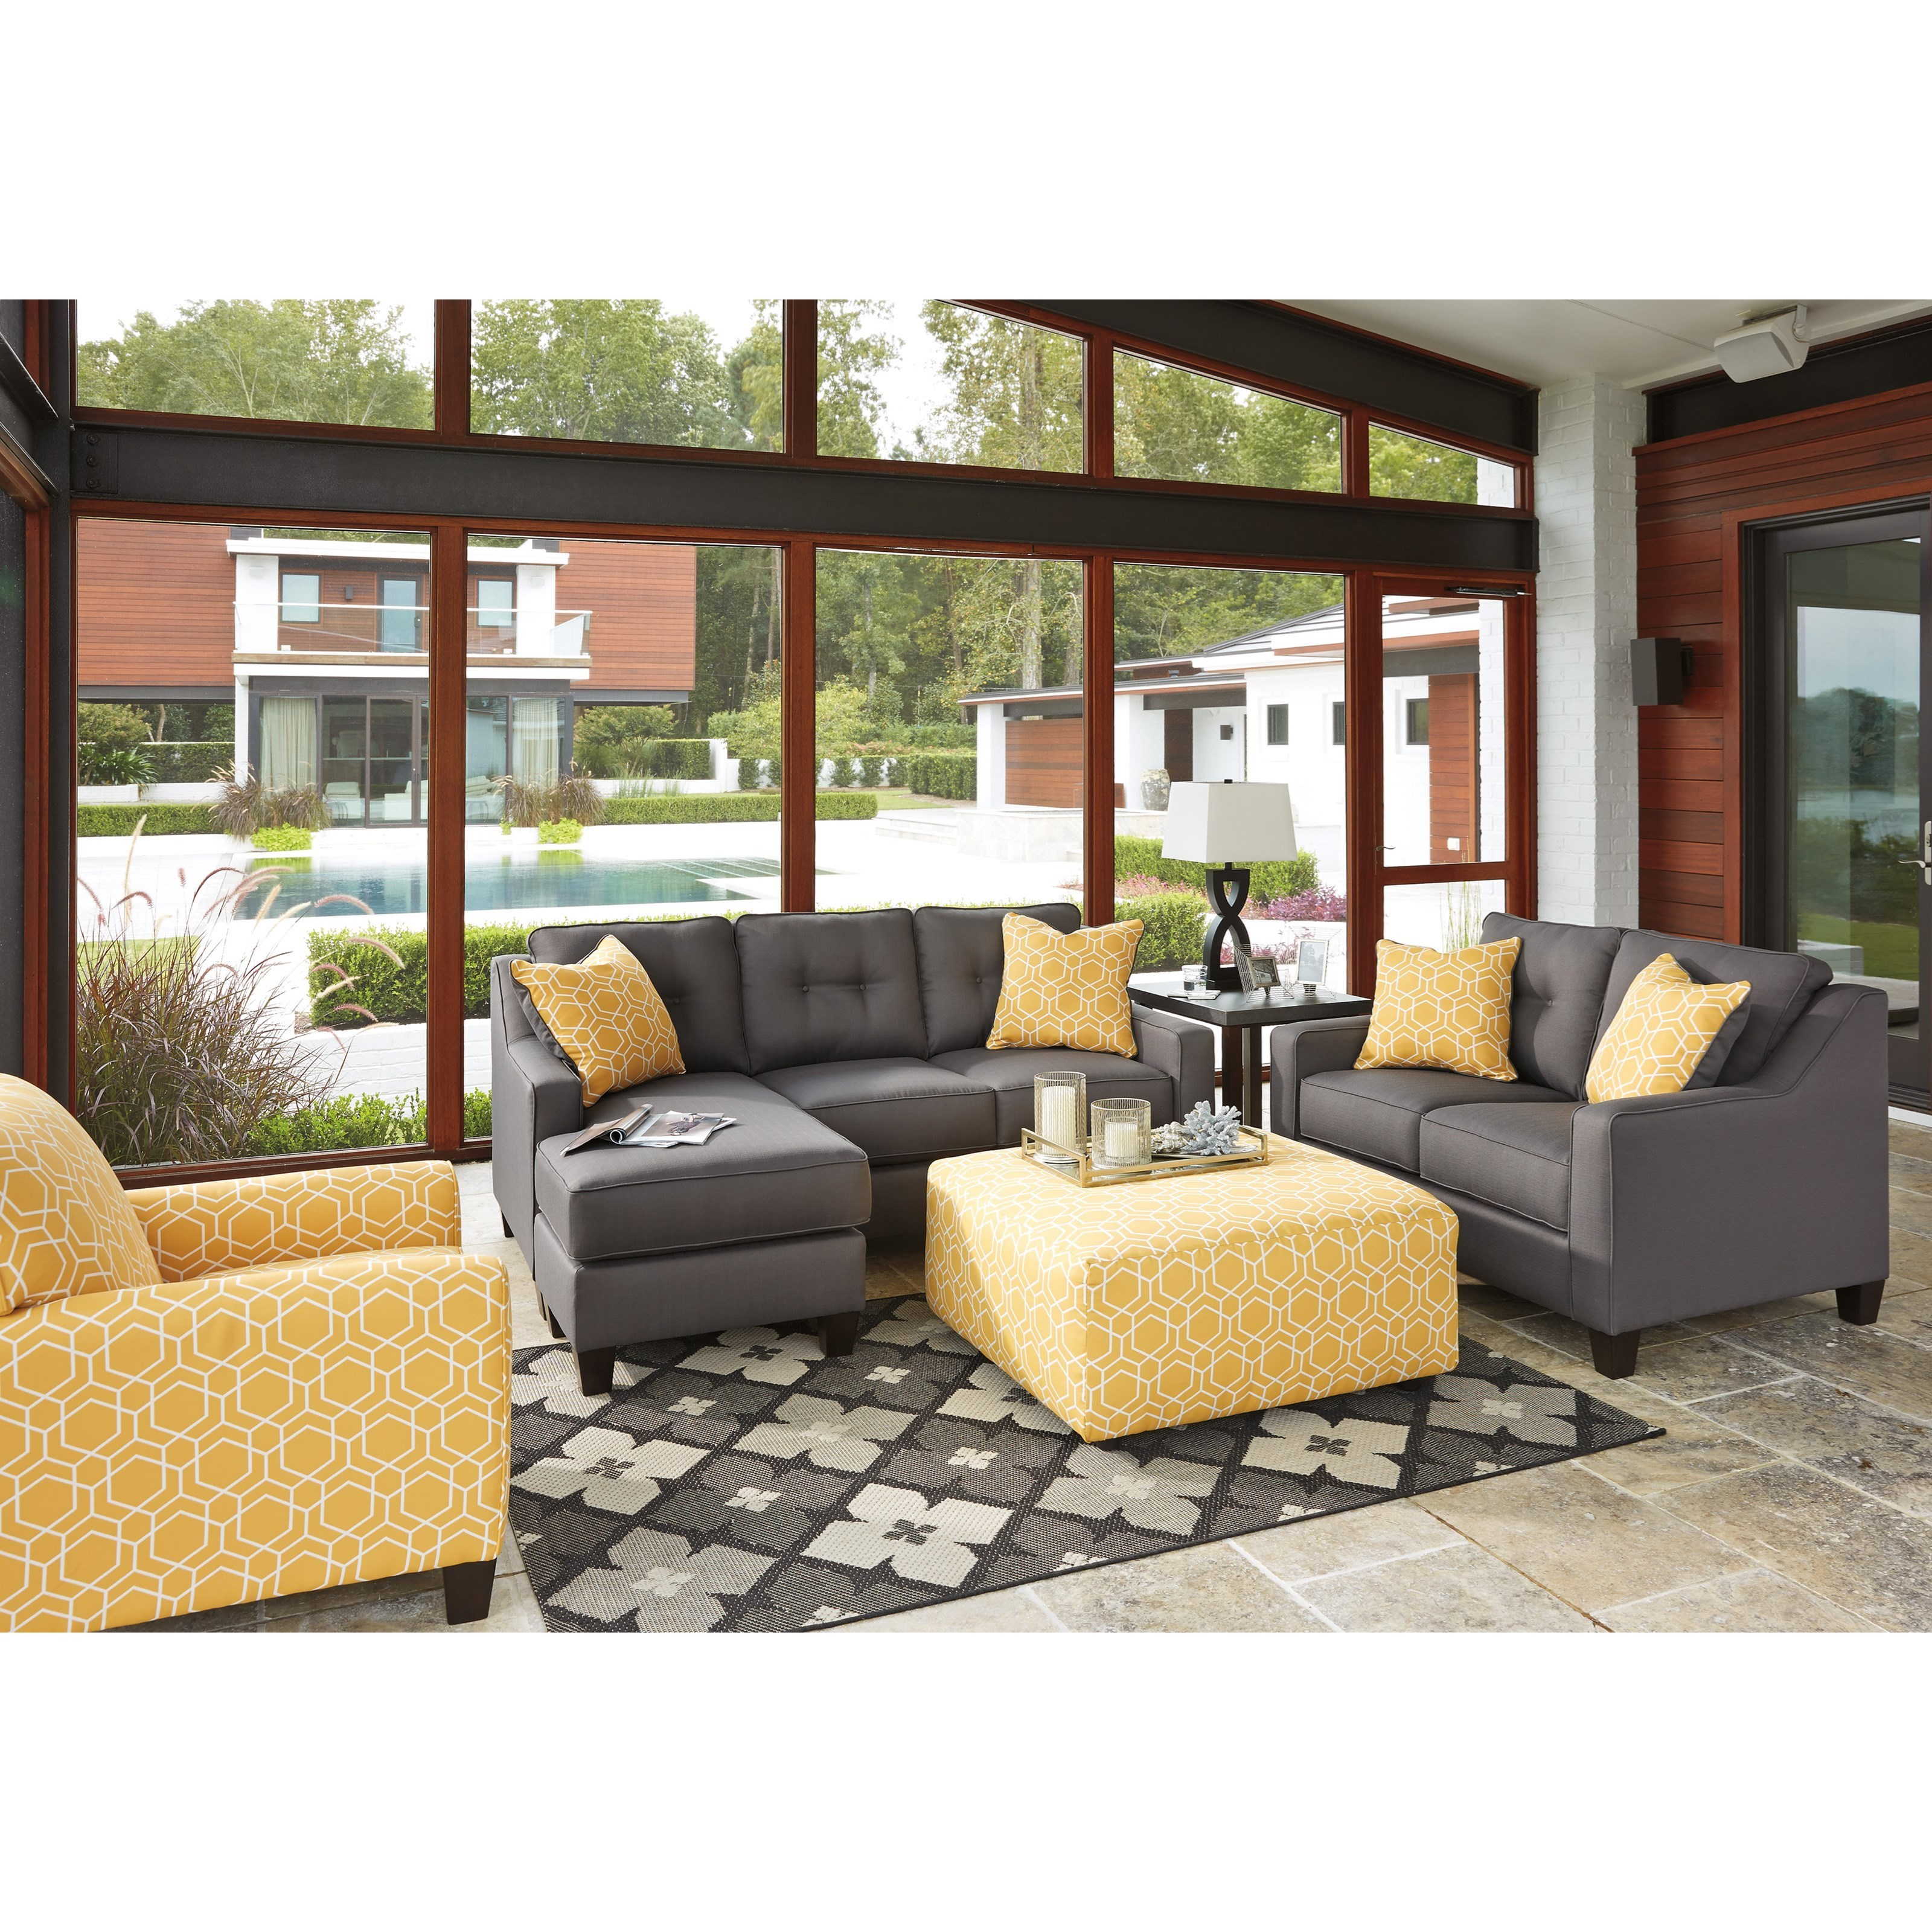 Benchcraft Aldie Nuvella Stationary Living Room Group - Item Number: 68702 Living Room Group 3